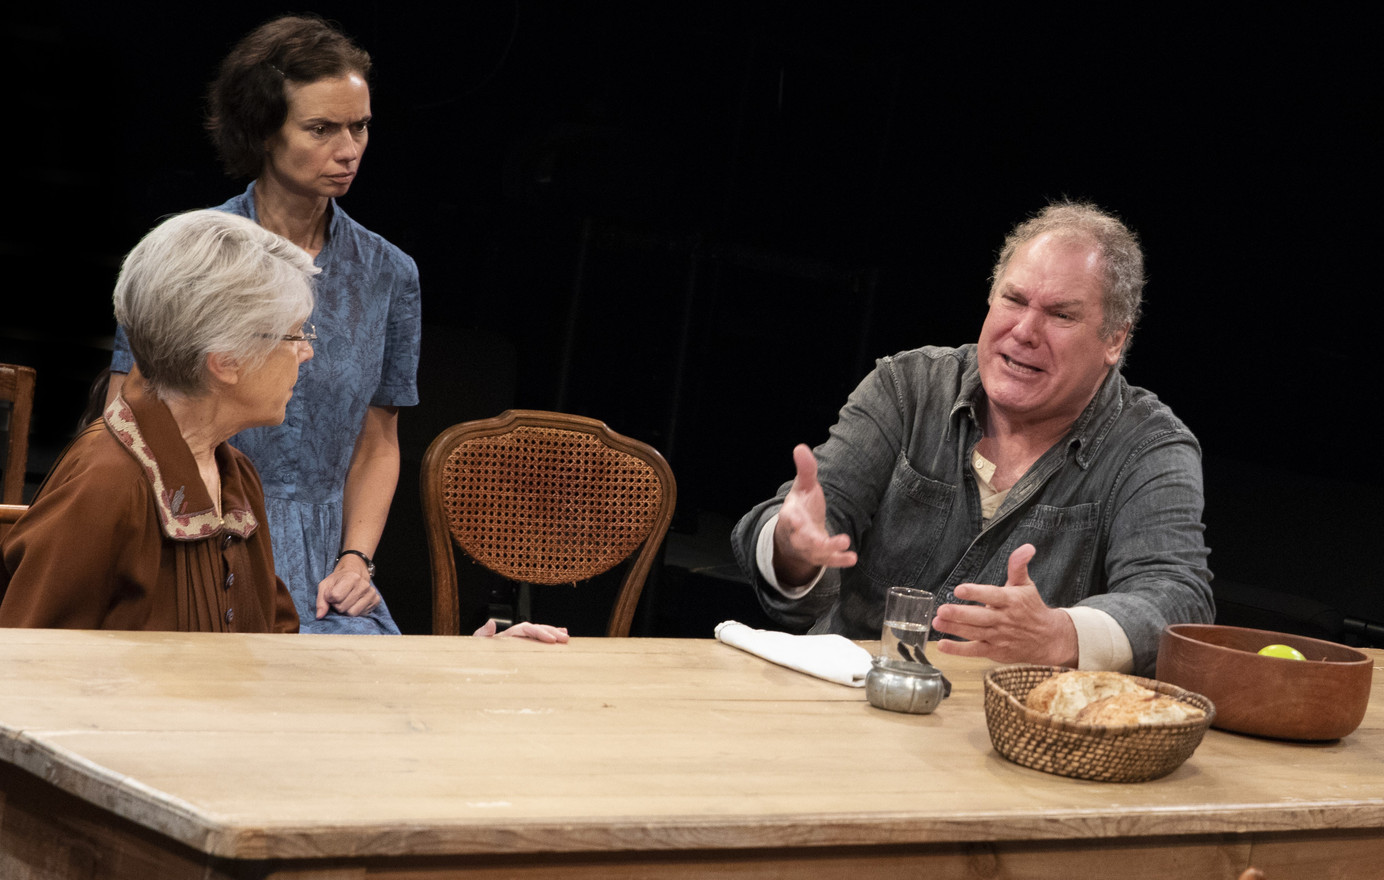 Alice Cannon, Yvonne Woods, and Jay O. Sanders in the New York premiere of Uncle Vanya, translated by Richard Nelson, Richard Pevear and Larissa Volokhonsky, and directed Nelson, running through October 14 at The Hunter Theater Project.  Photo credit: Joan Marcus